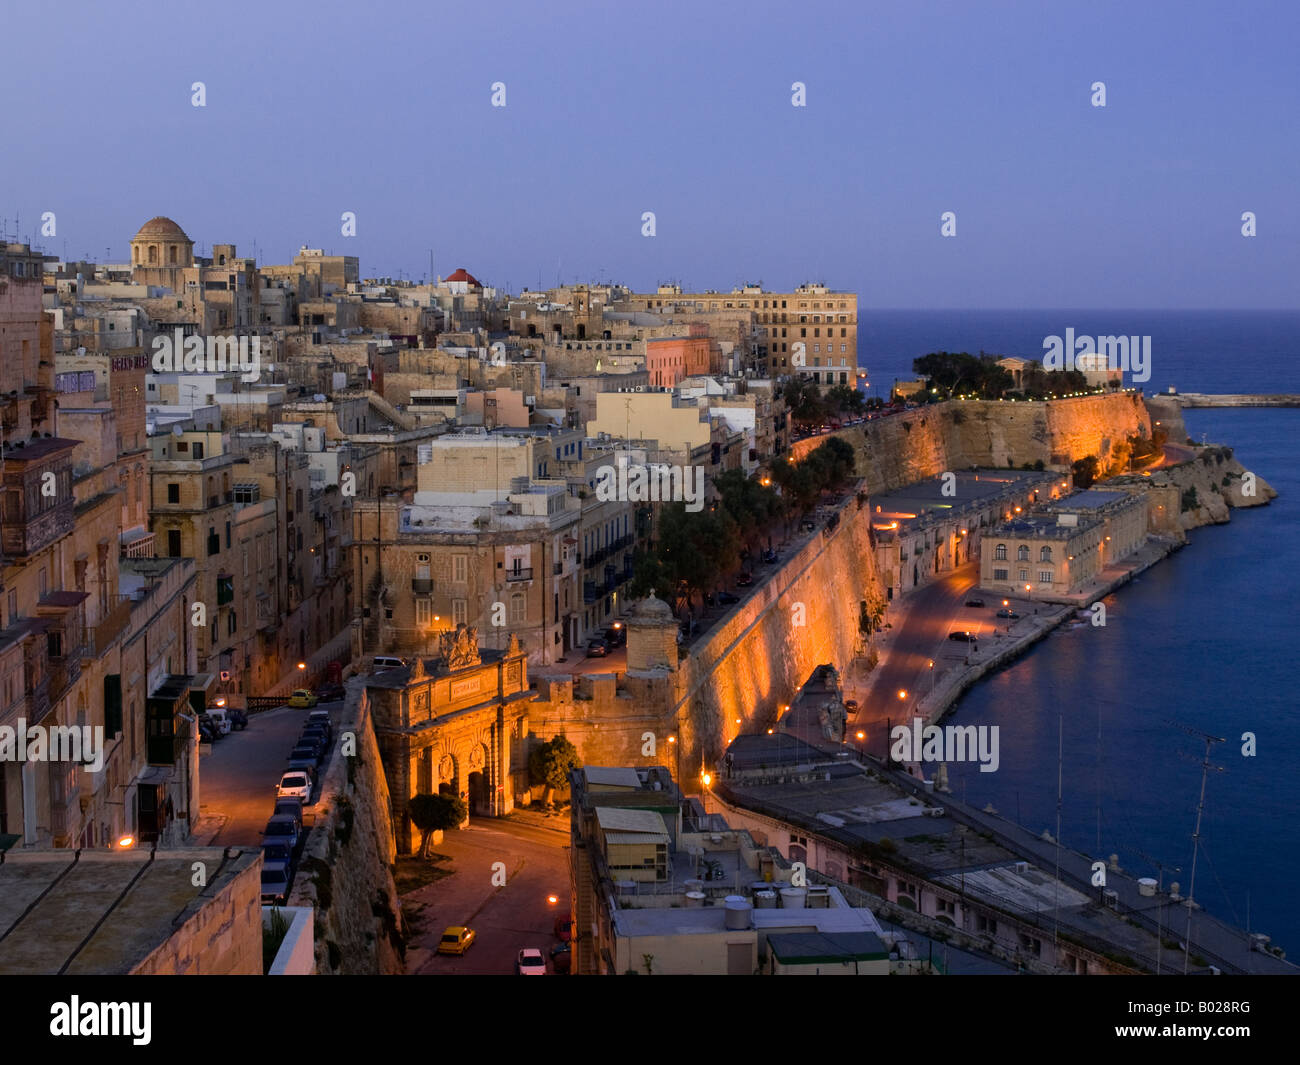 The beautiful skyline of Valletta - Malta's densely-packed capital city - as seen from the Upper Barrakka Gardens. - Stock Image